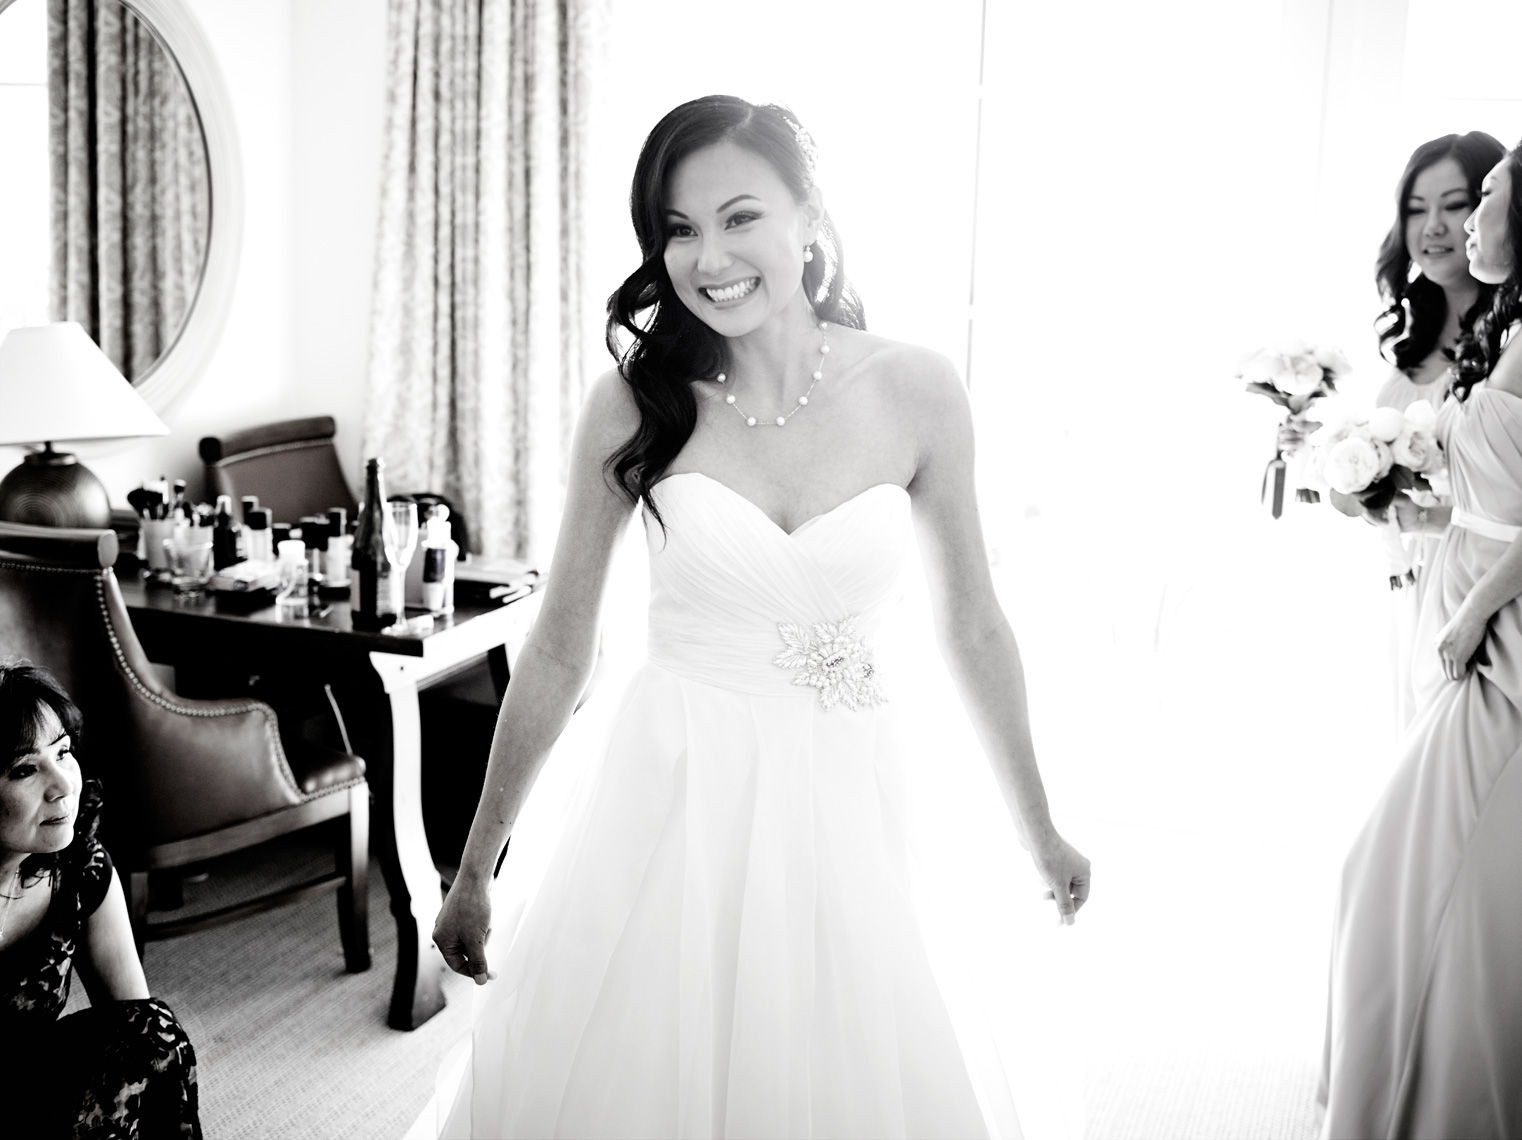 Bride puts on wedding dress at Terranea Resort in Rancho Palos Verdes, CA